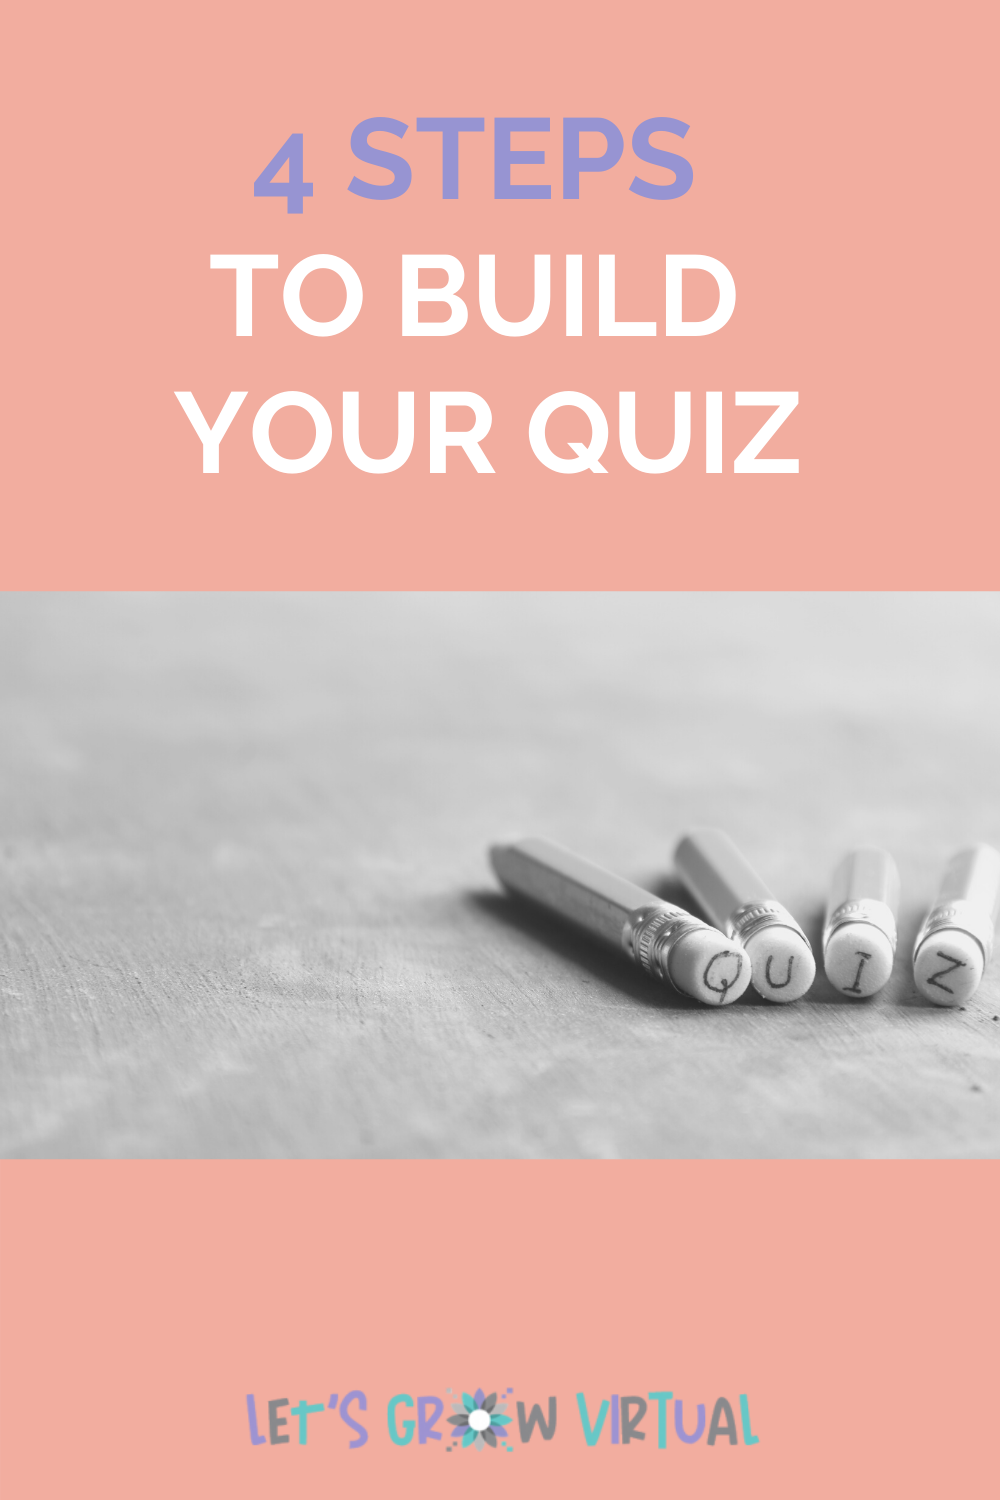 4 Steps to Building Your Quiz